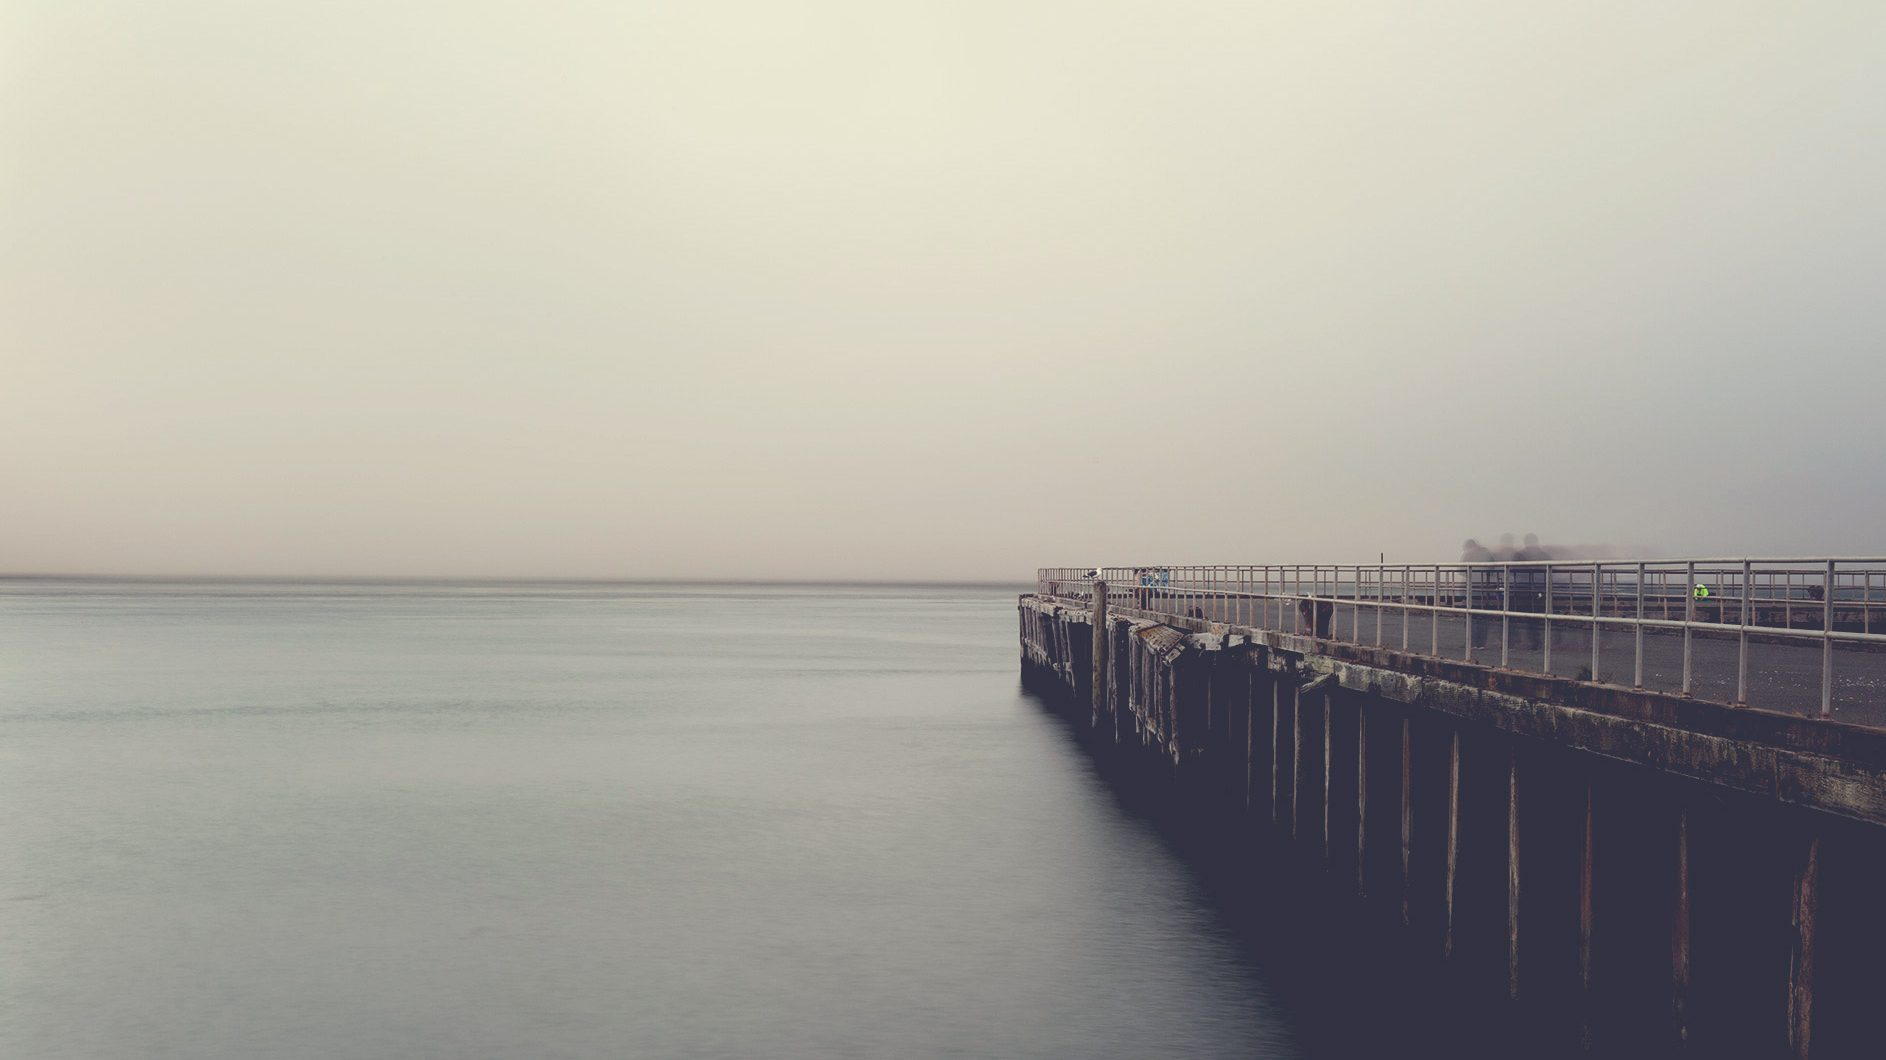 The Pier, the Birds and the Moment